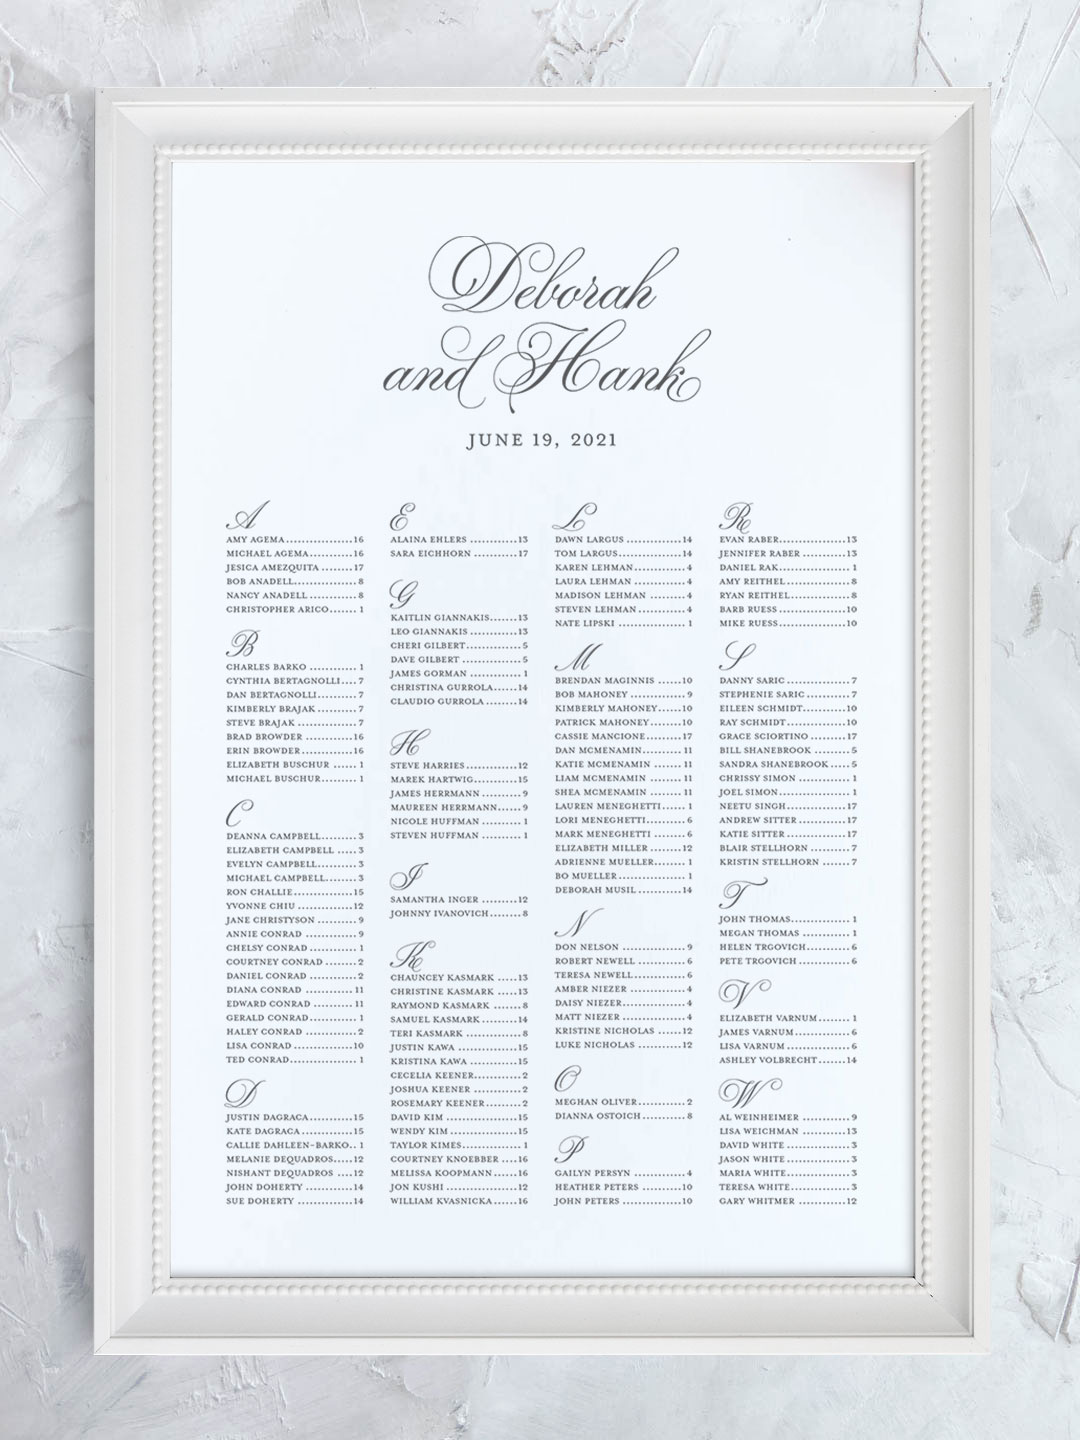 Wedding seating chart with fancy script names organized alphabetically.